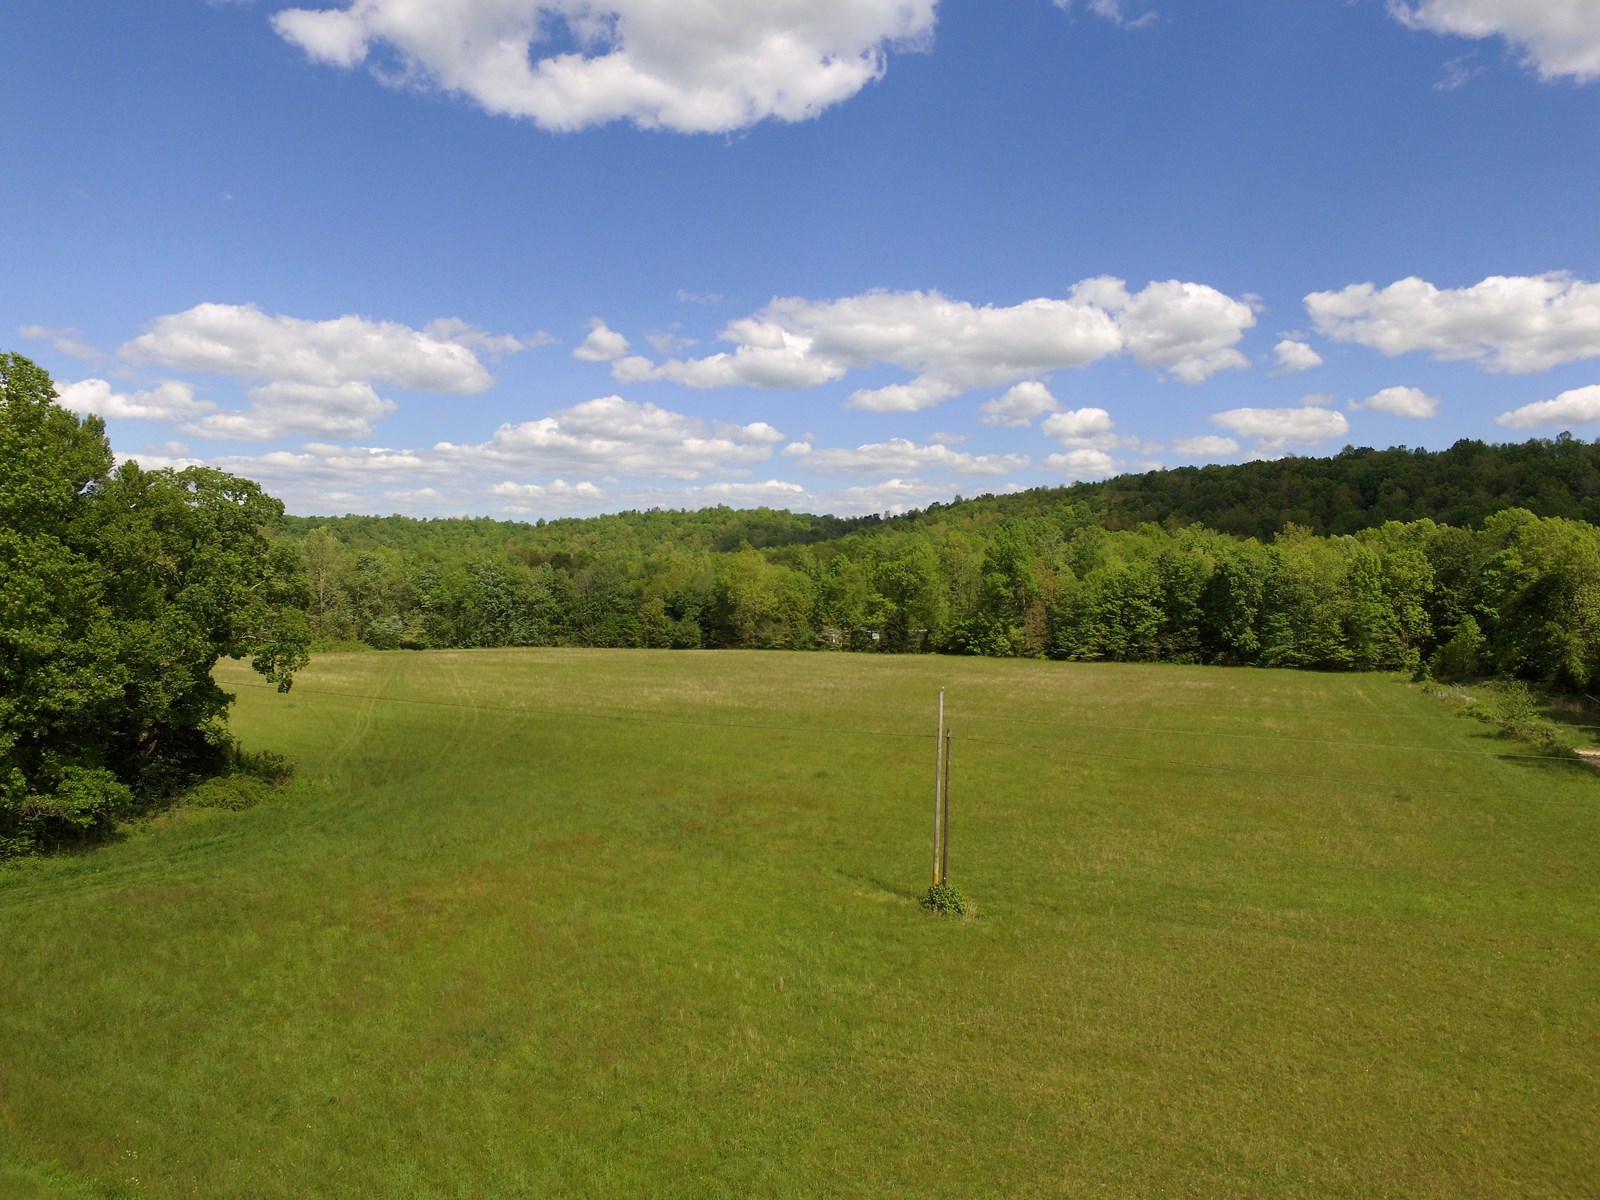 UNRESTRICTED ACREAGE - BDLG. SITES / DUNNVILLE, KY.